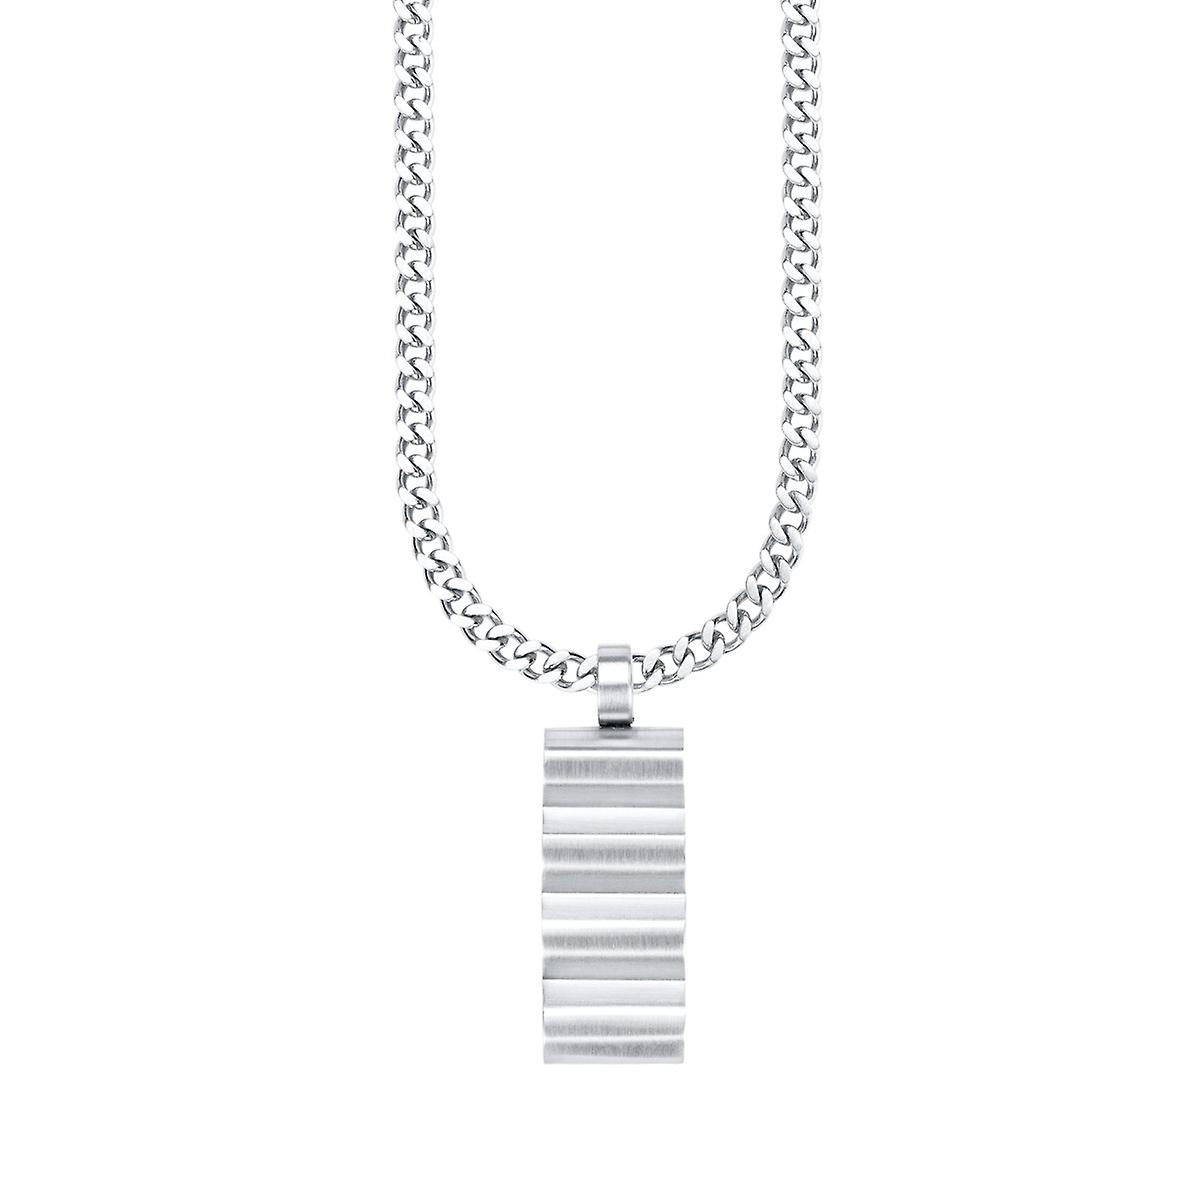 s.Oliver Jewel Men necklace chain stainless SO1275 / 1-524407